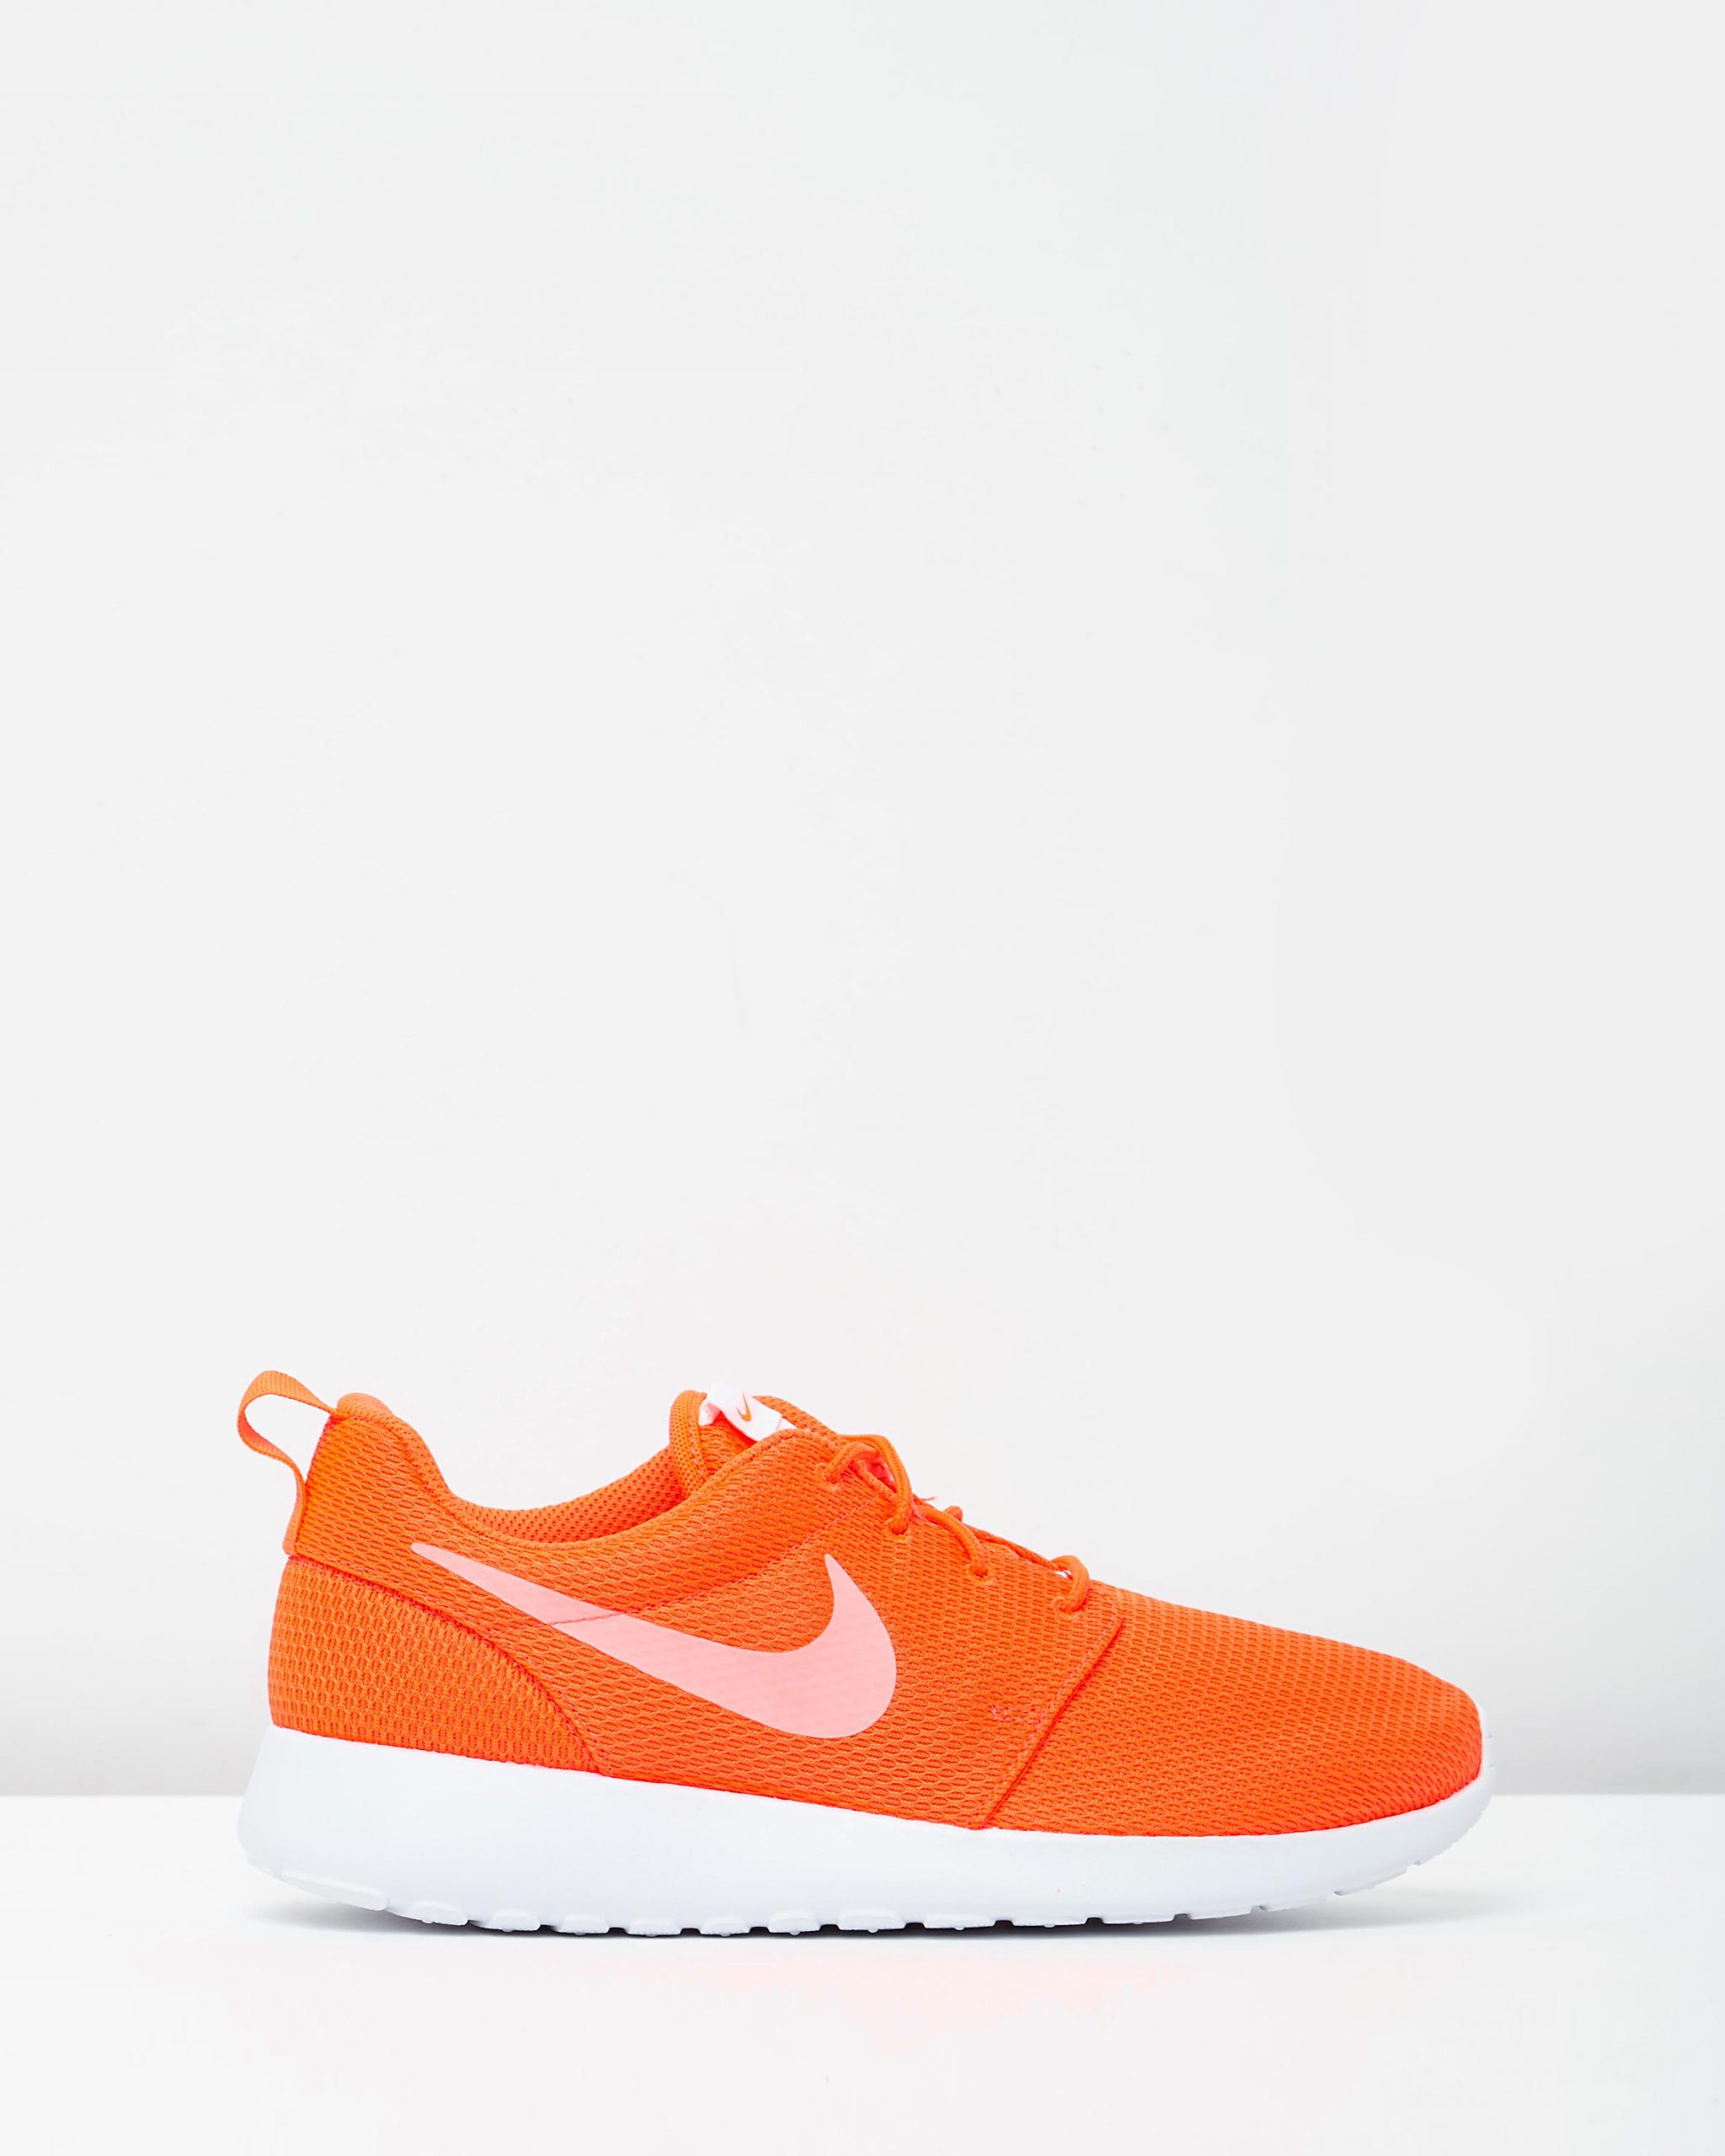 Women's Nike Roshe One Orange